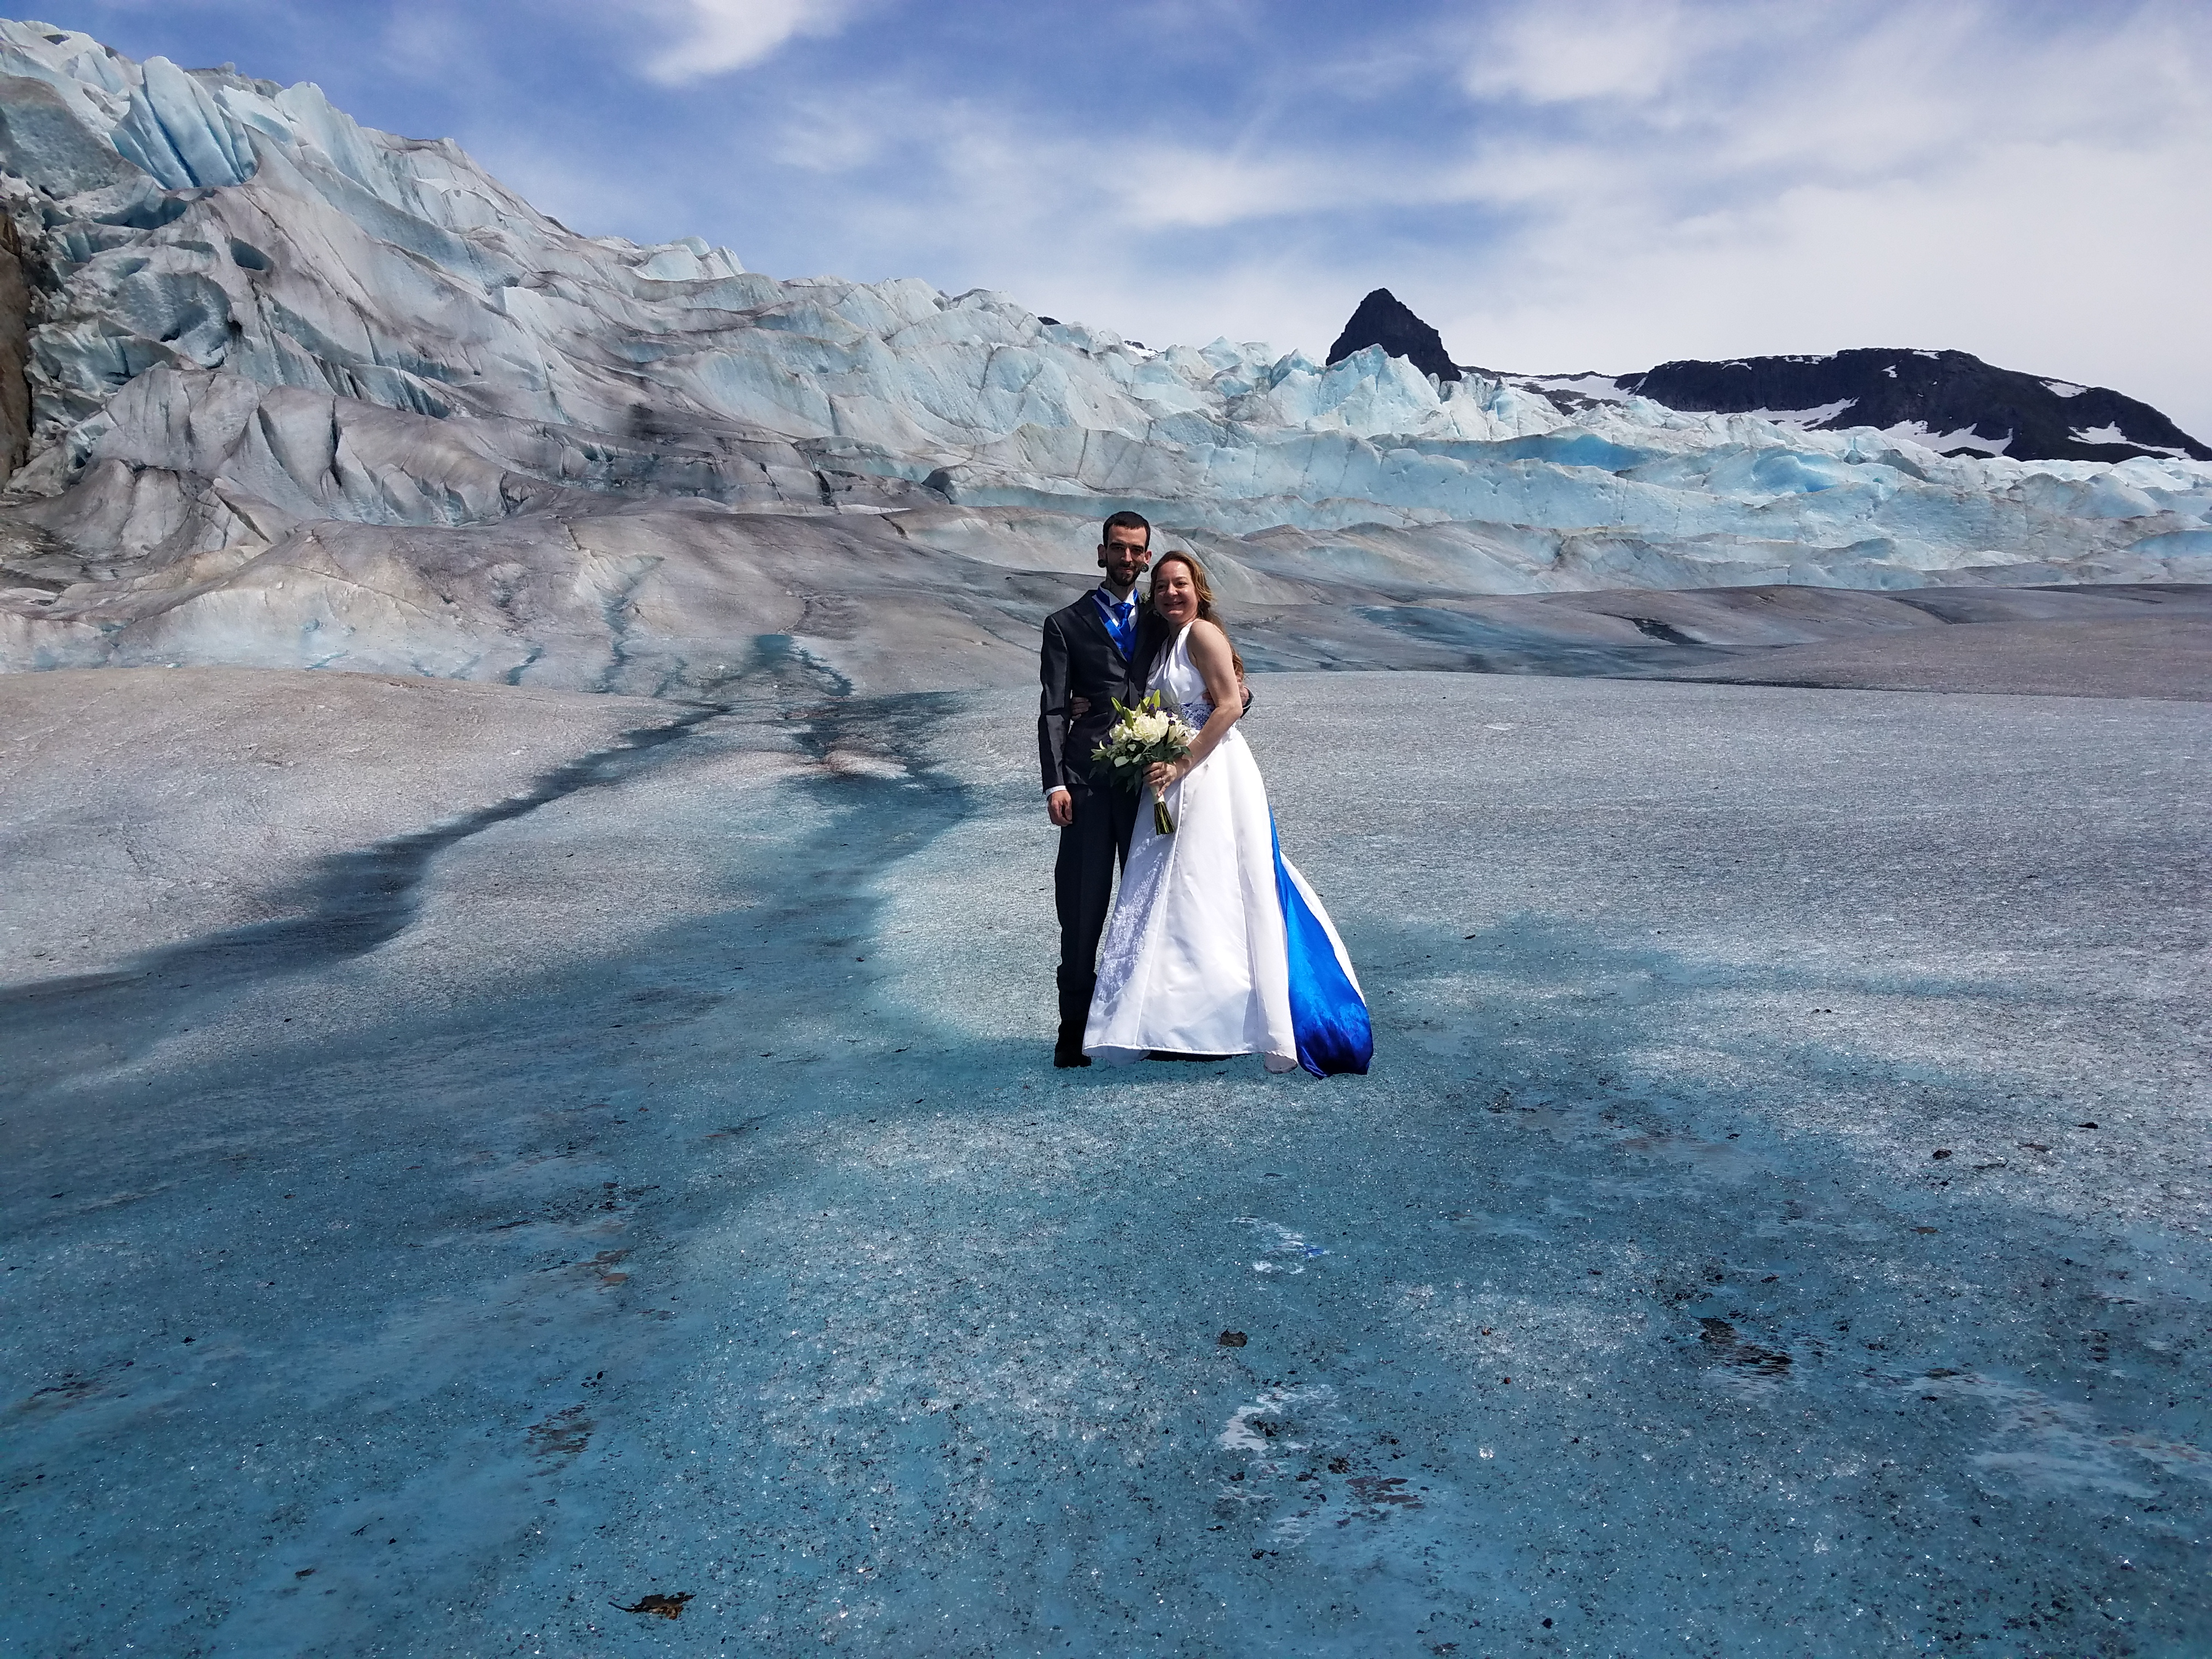 Photo of a glacier wedding couple on the blue ice of Mendenhall Glacier in Juneau, Alaska.